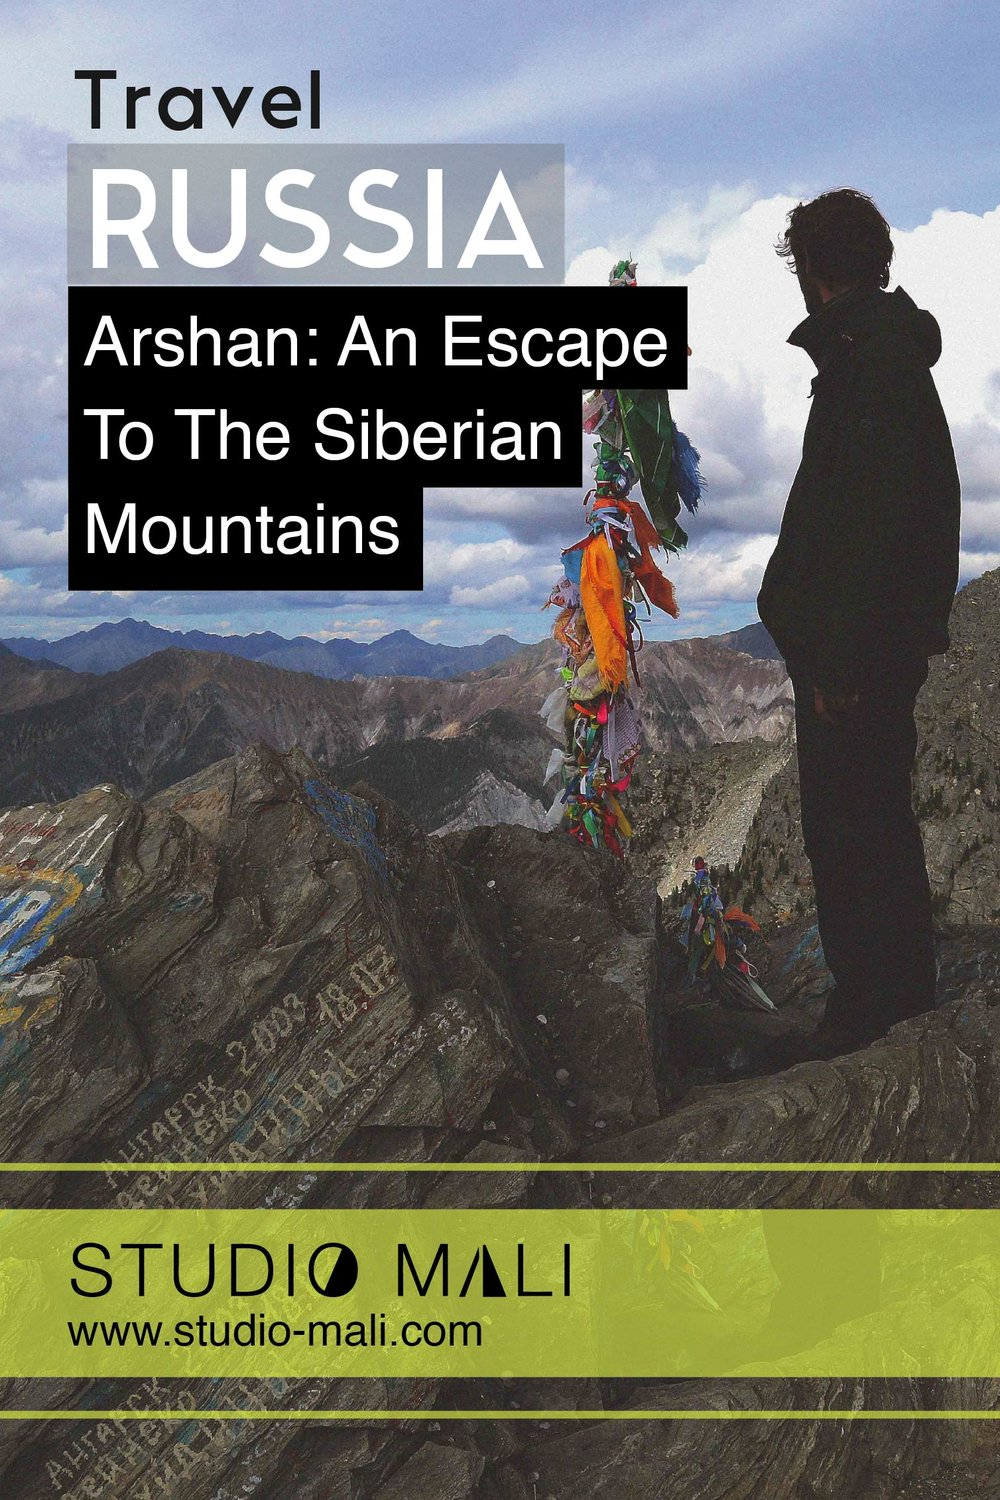 Russia - Arshan, An Escape To The Siberian Mountains, by Studio Mali.jpg